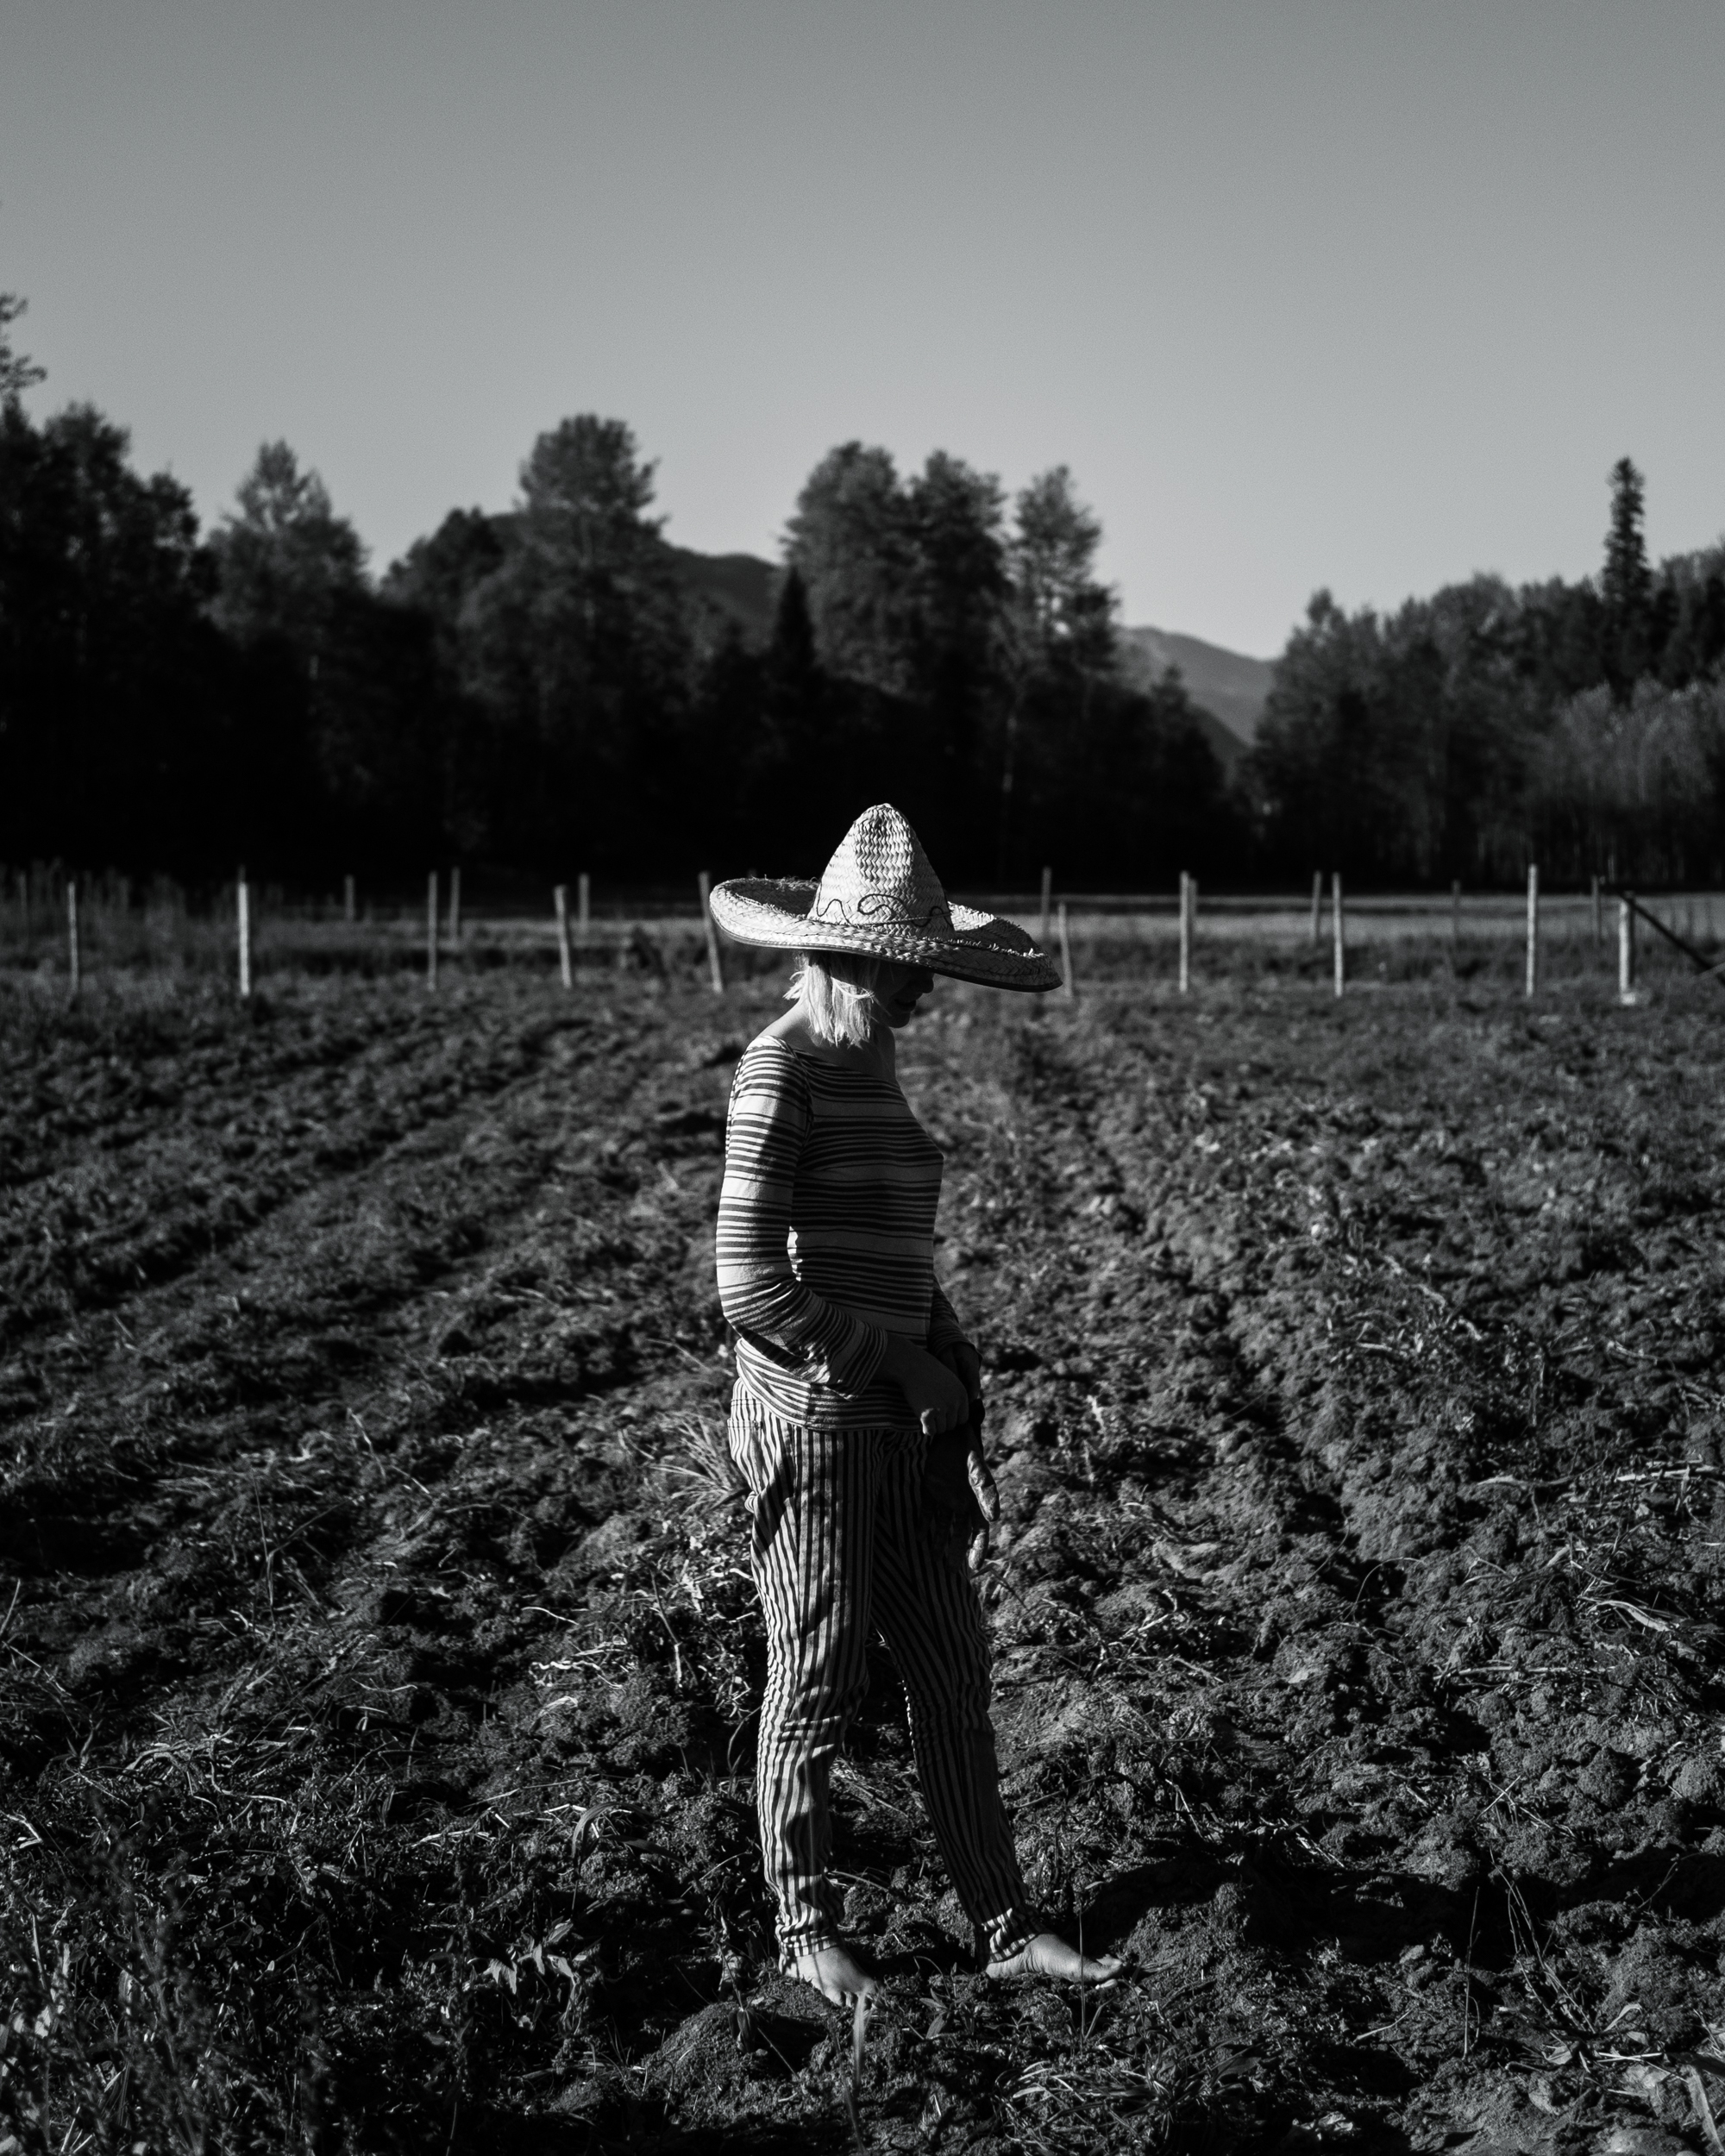 Vince's daughter Amber stands in the potato field during the 2014 harvest. Although her father felt she should be a farmer, from an early age it was clear she was destined to be on stage as an actress. When not helping